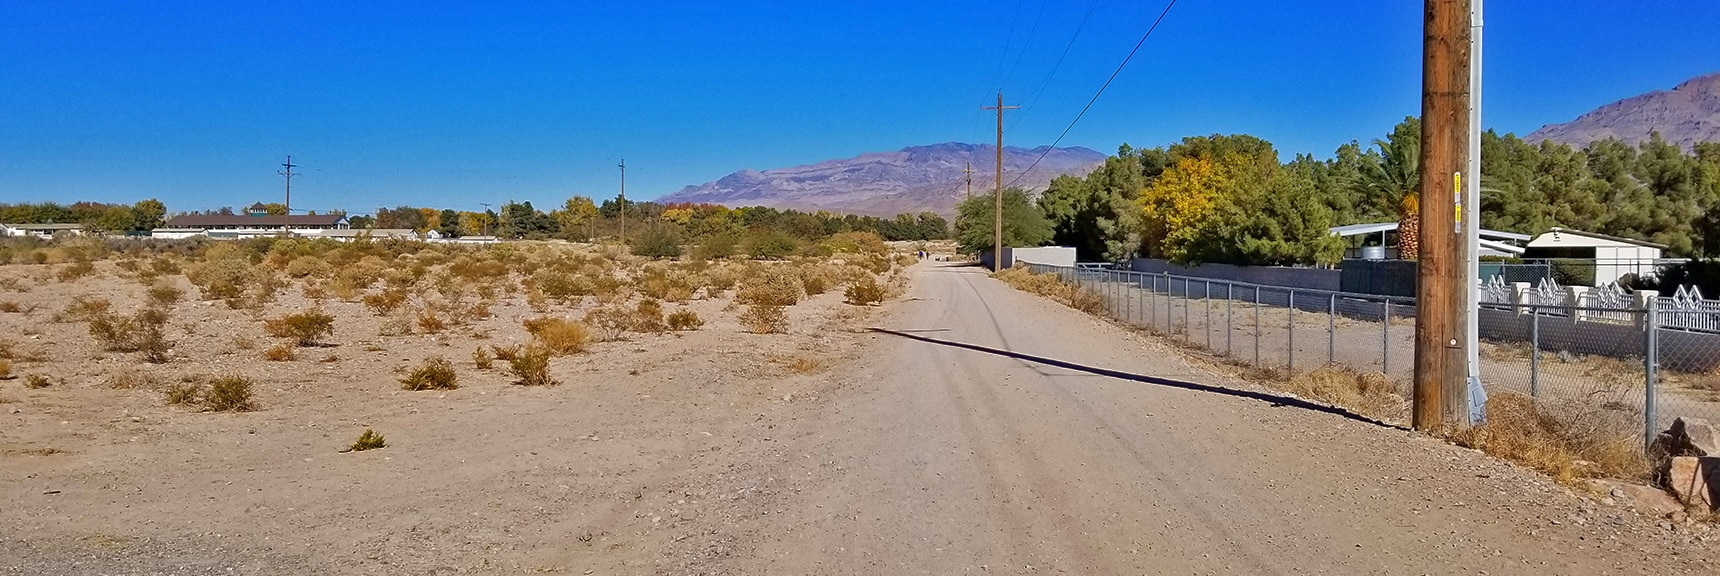 Extensive Bike and Hiking Trail Network South and East of Floyd Lamb Park   Centennial Hills Mountain Bike Conditioning Adventure Loop, Las Vegas, Nevada